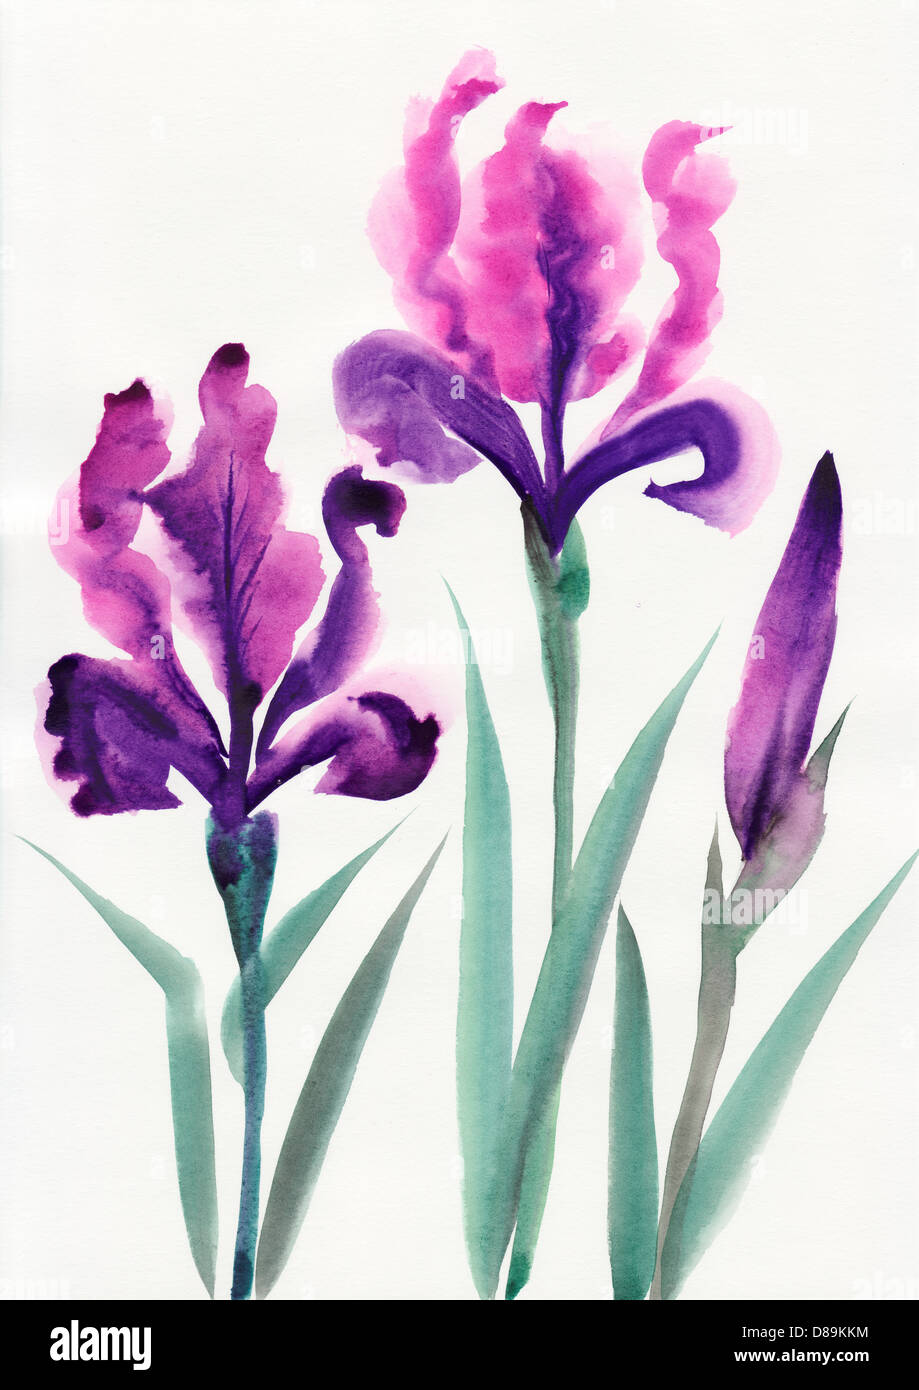 Iris flowers original watercolor painting stock photo 56761368 alamy iris flowers original watercolor painting izmirmasajfo